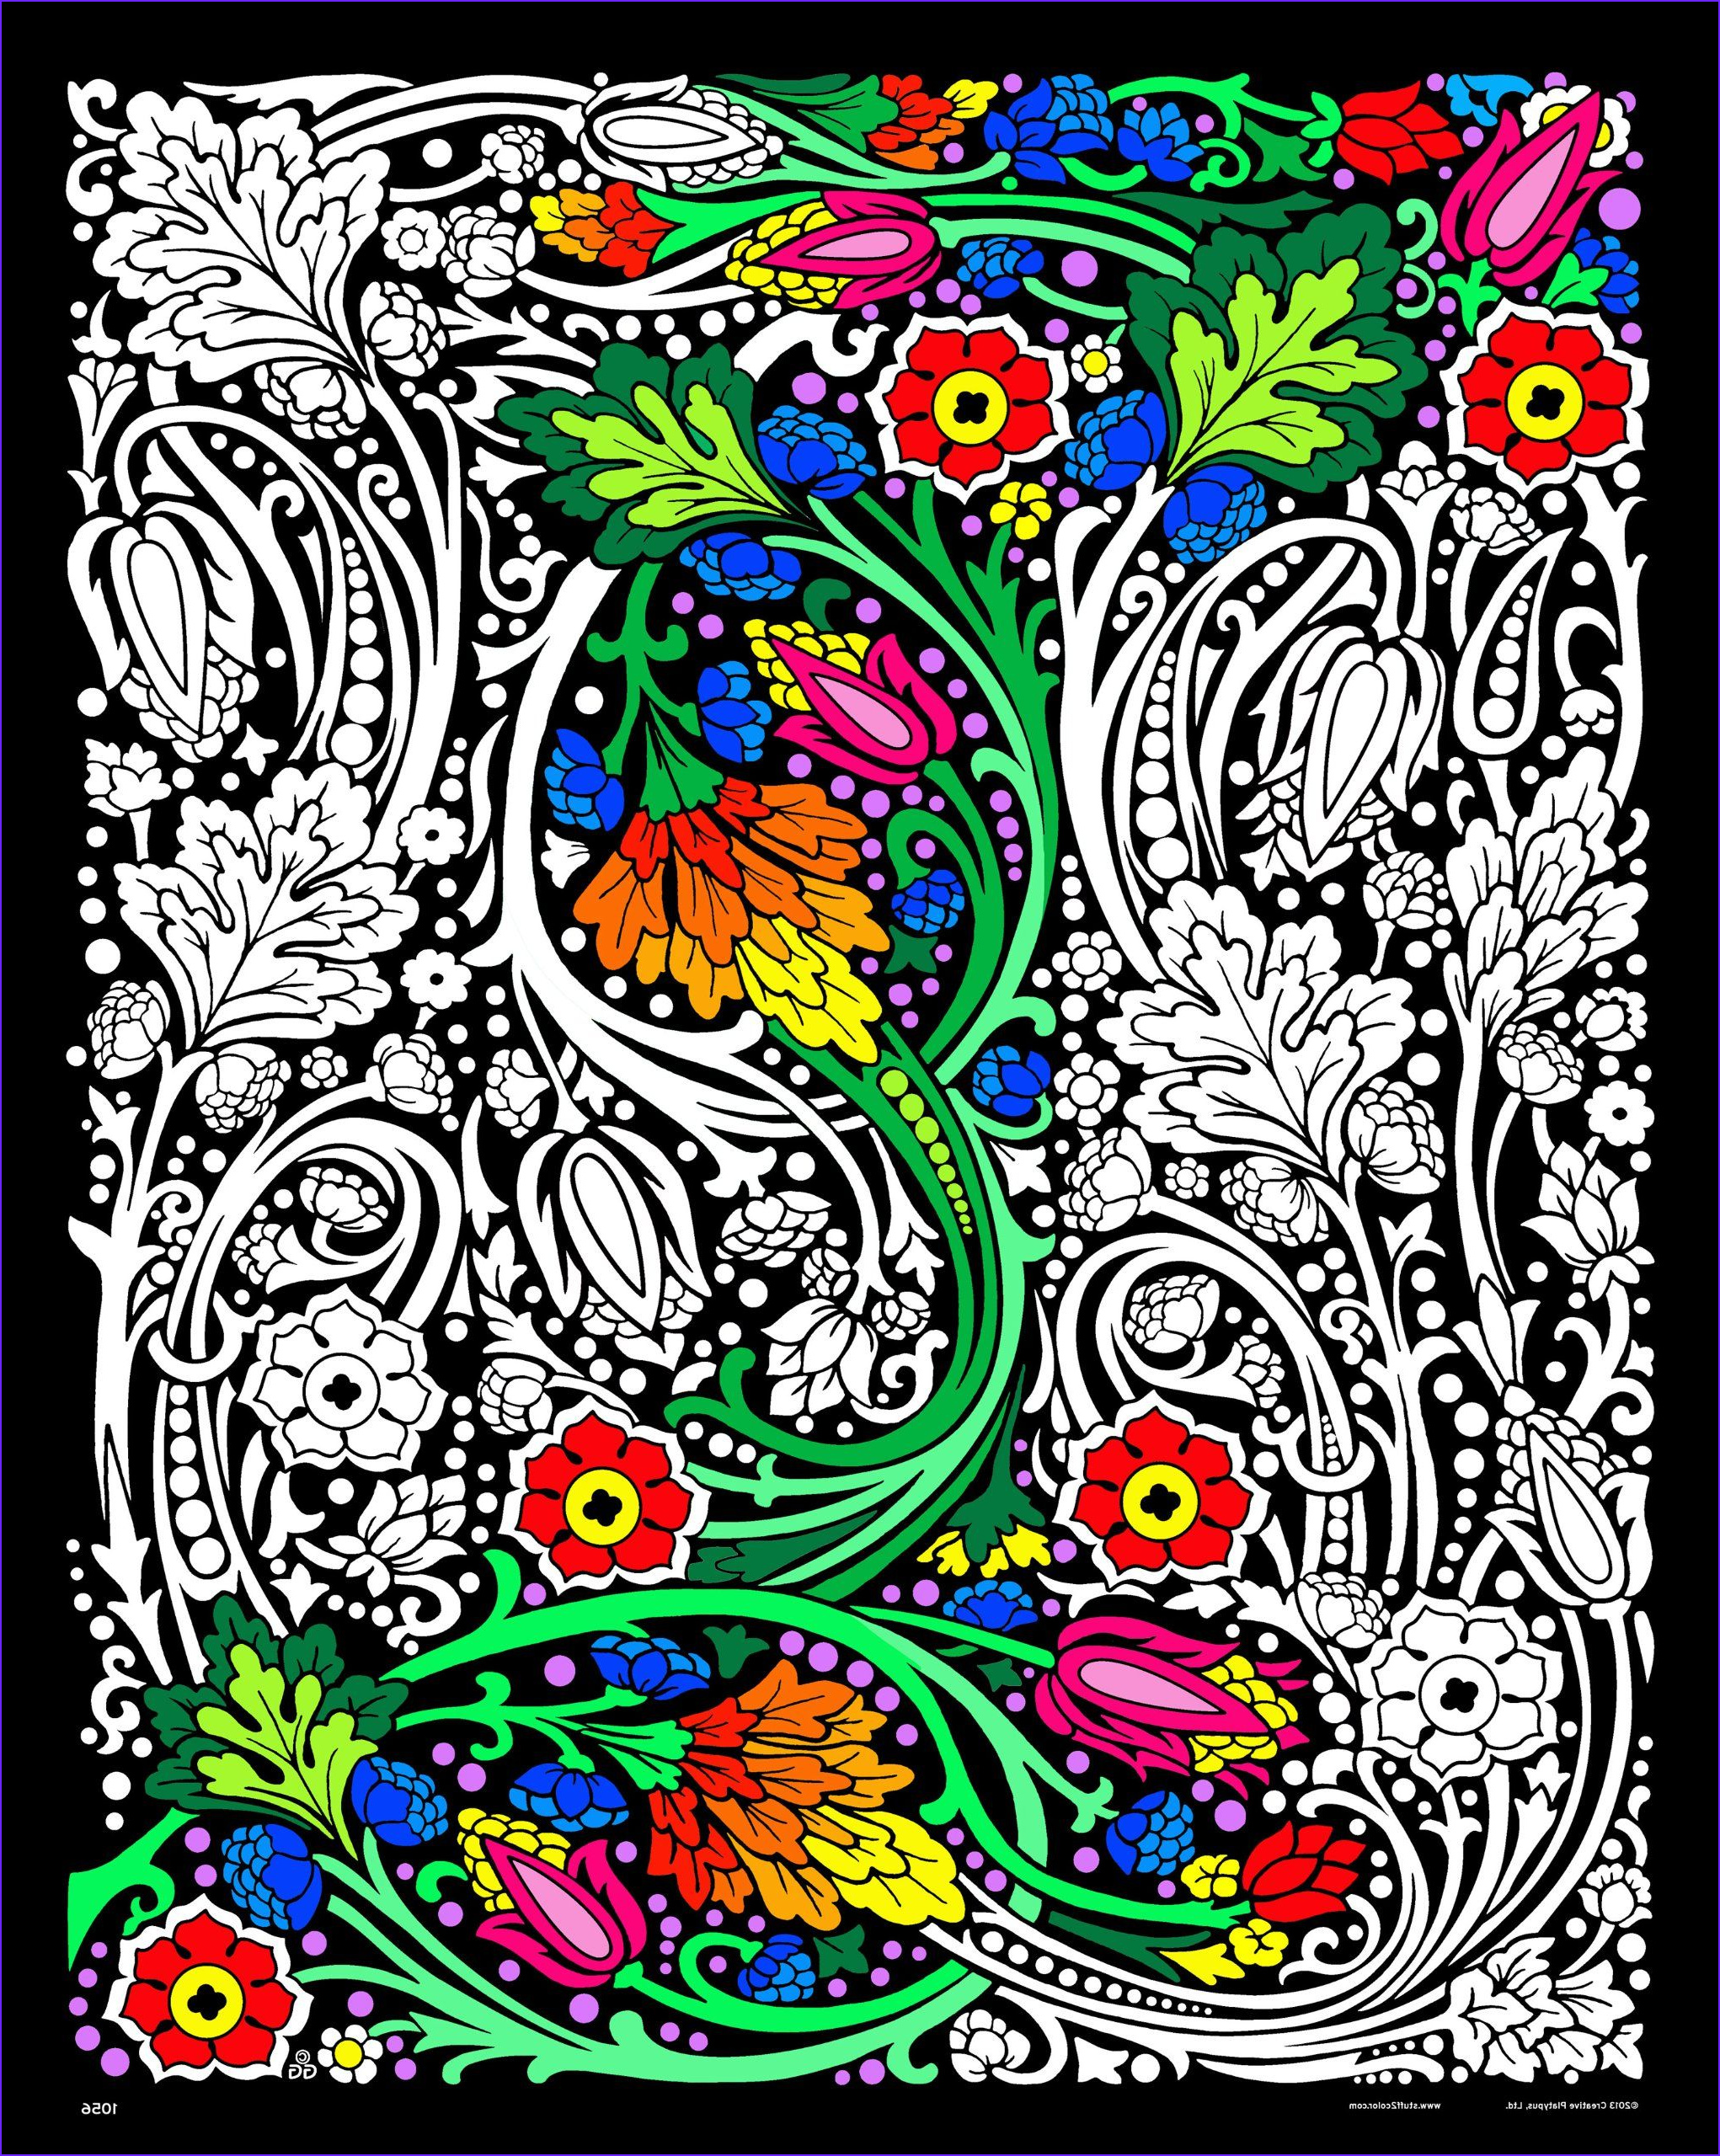 Velvet Coloring Posters Adults Cool Photos Amazon Floral Mania Fuzzy Velvet Poster 16x20